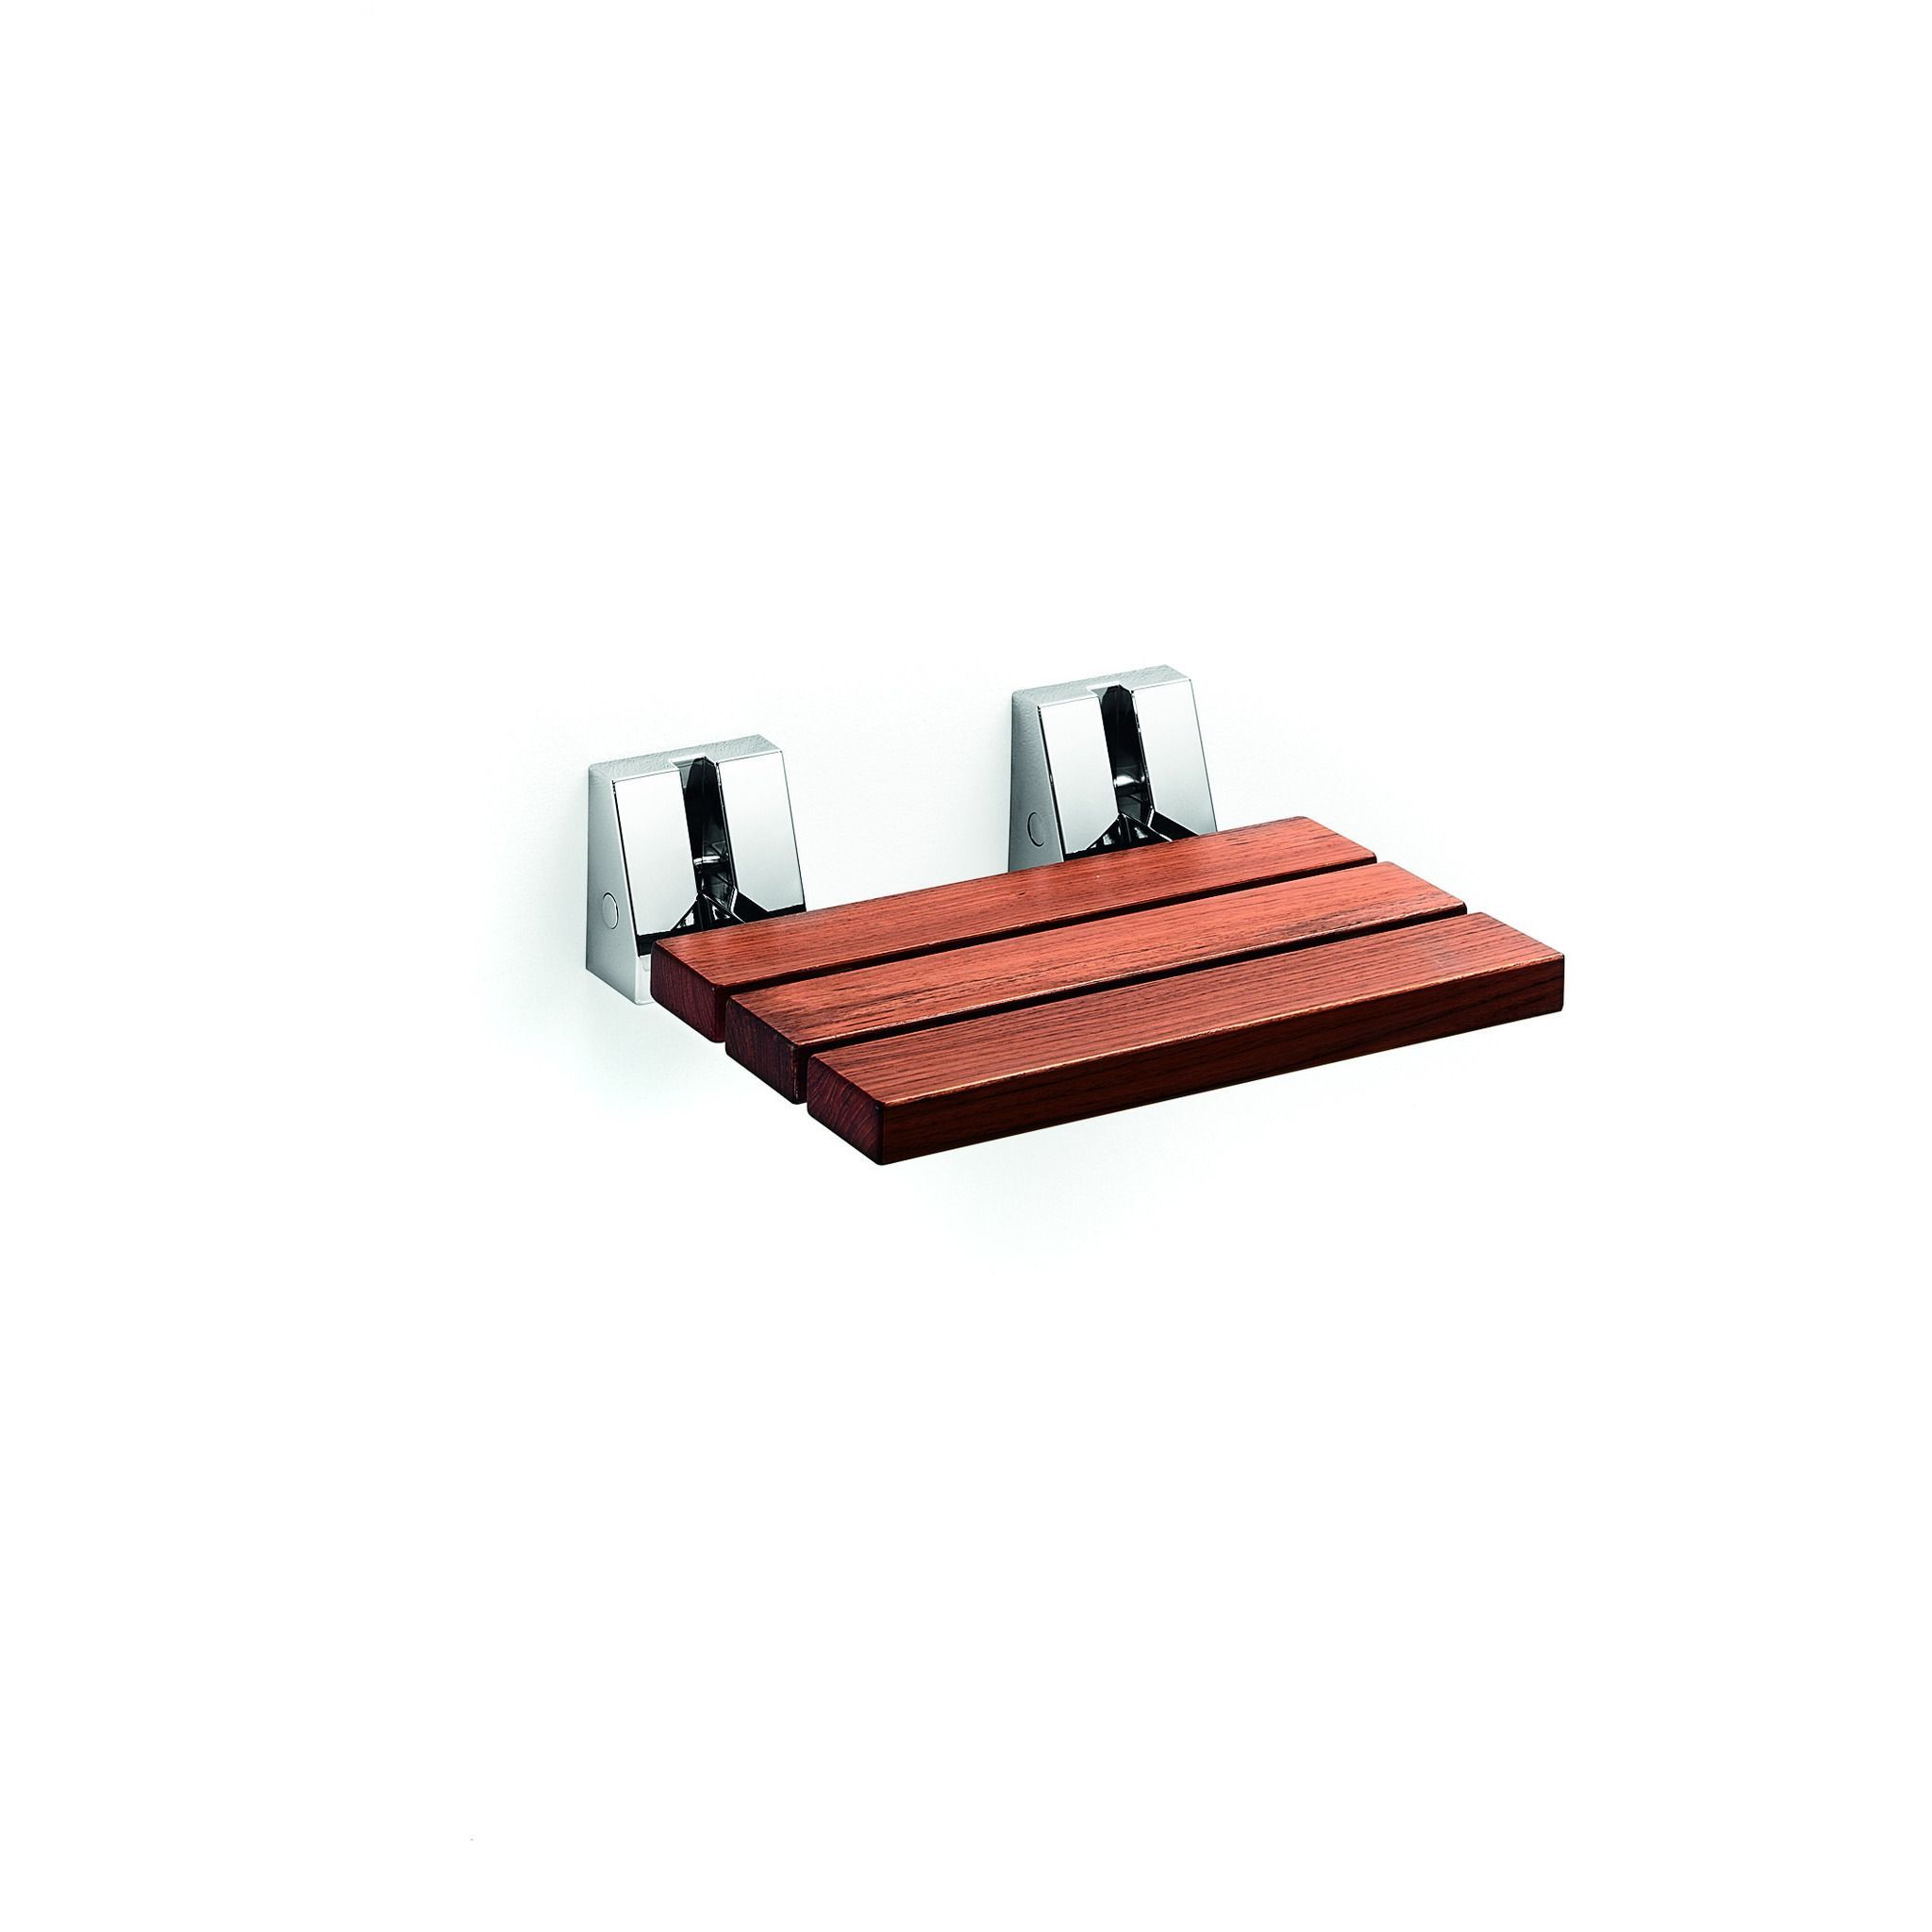 LB Scagni Folding Shower Seat in Teak Solid Wood, Fold Down Spa ...